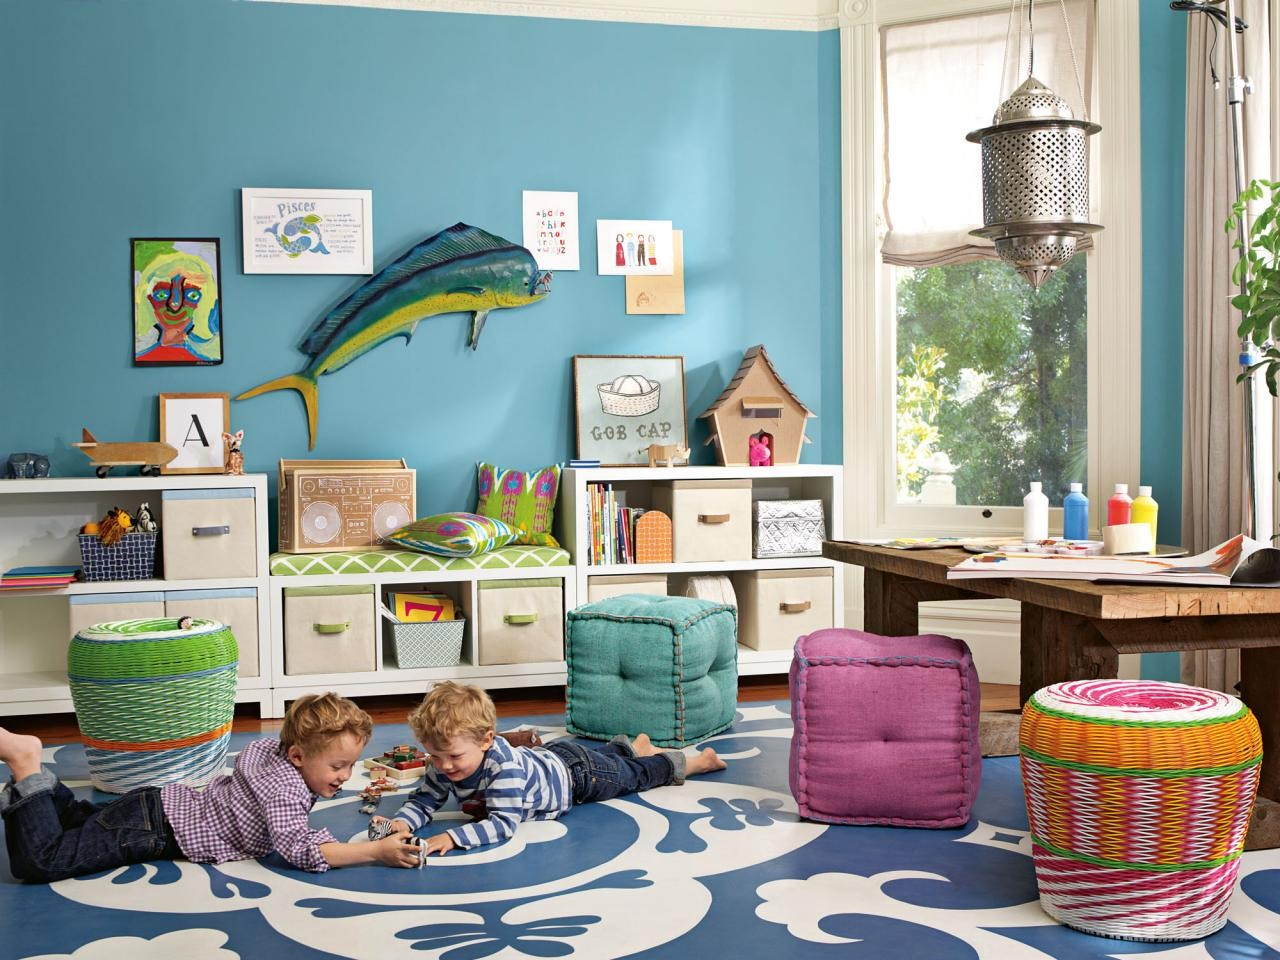 5 Tips for designing a friendly living room for your child